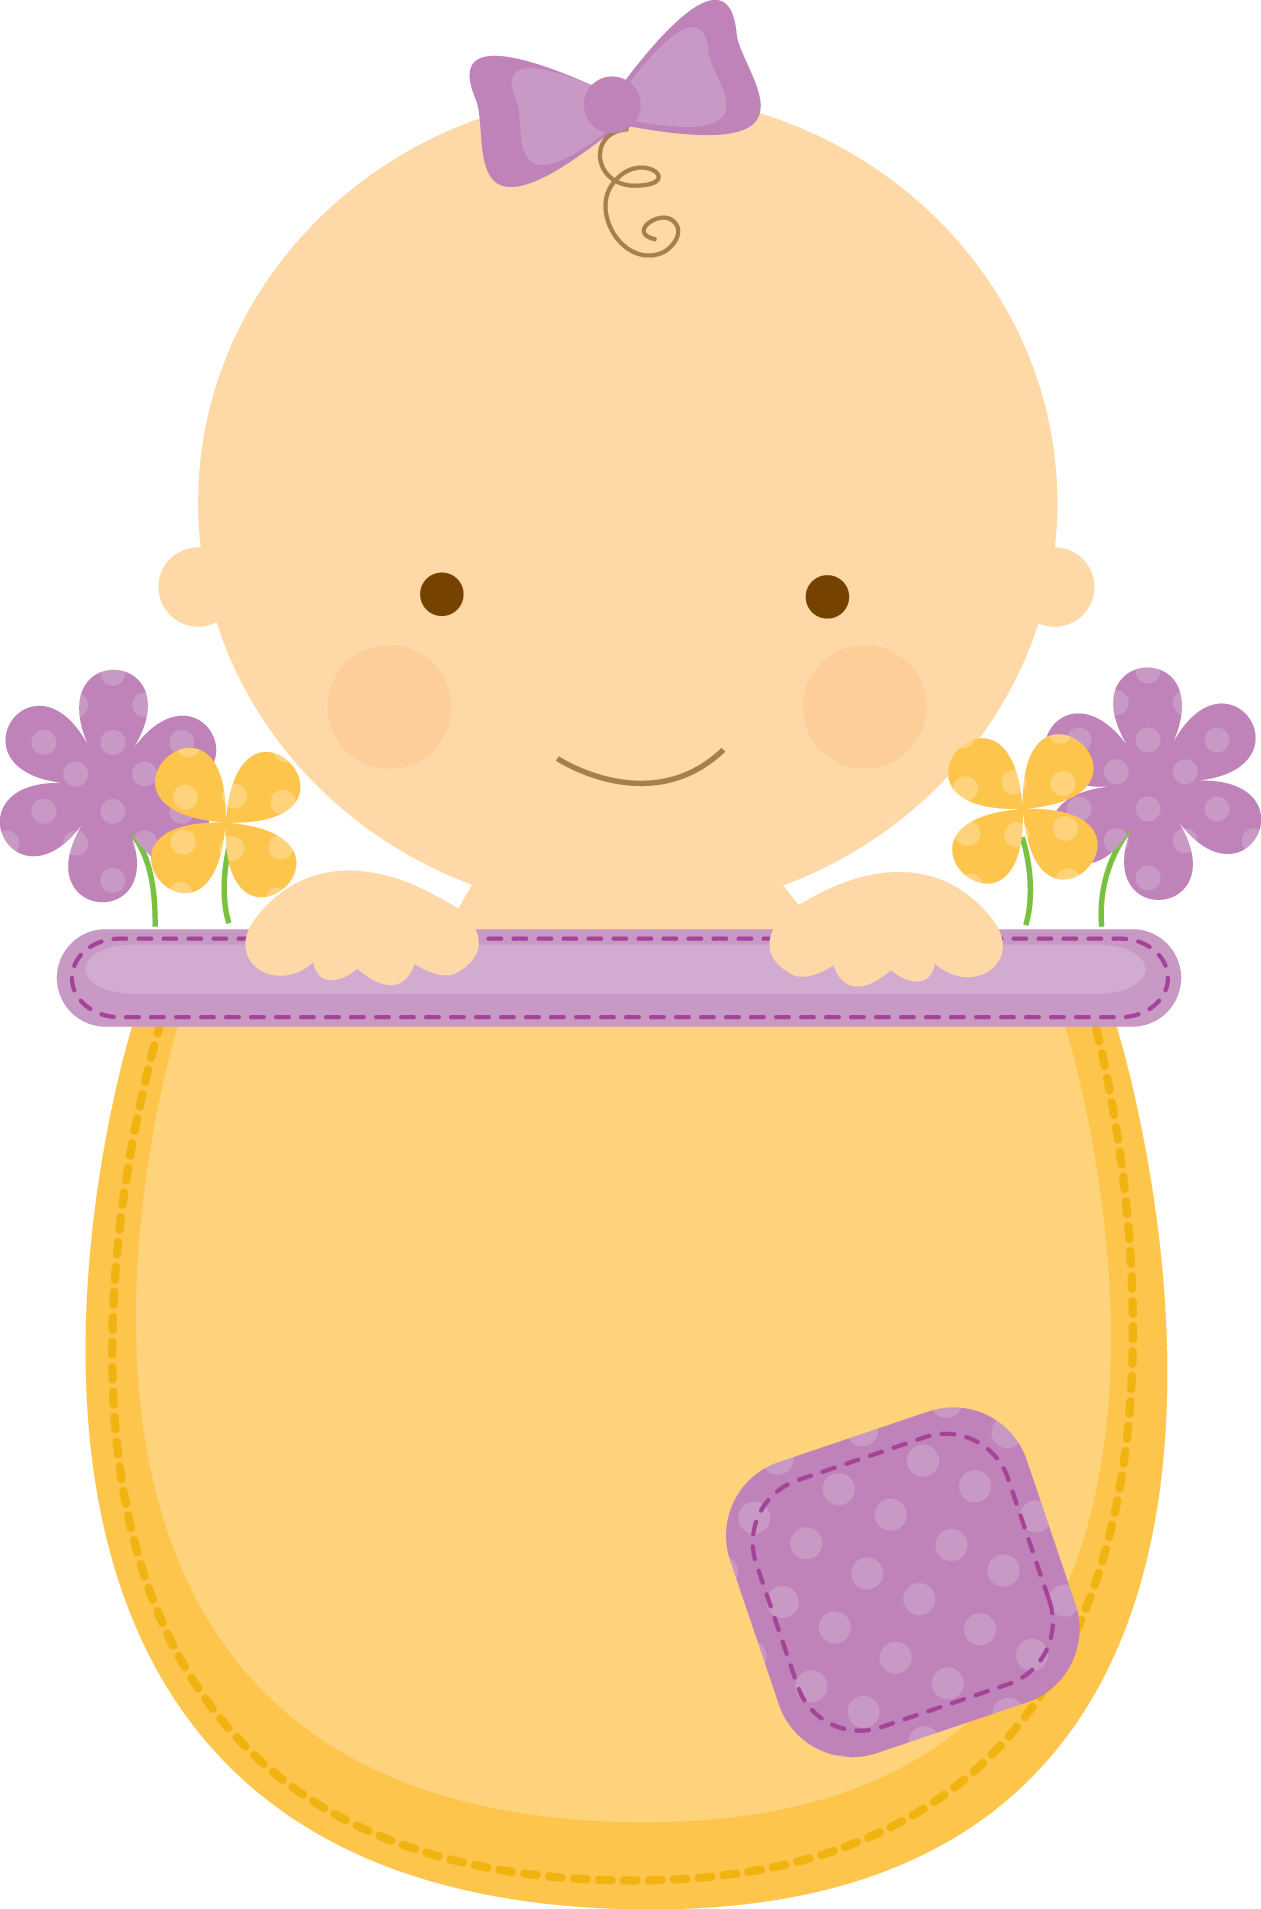 Baby baseball onesie clipart vector freeuse stock Flowerpot Babies - ClipArt.BABYINFLOWERPOT_Purple.png - Minus ... vector freeuse stock